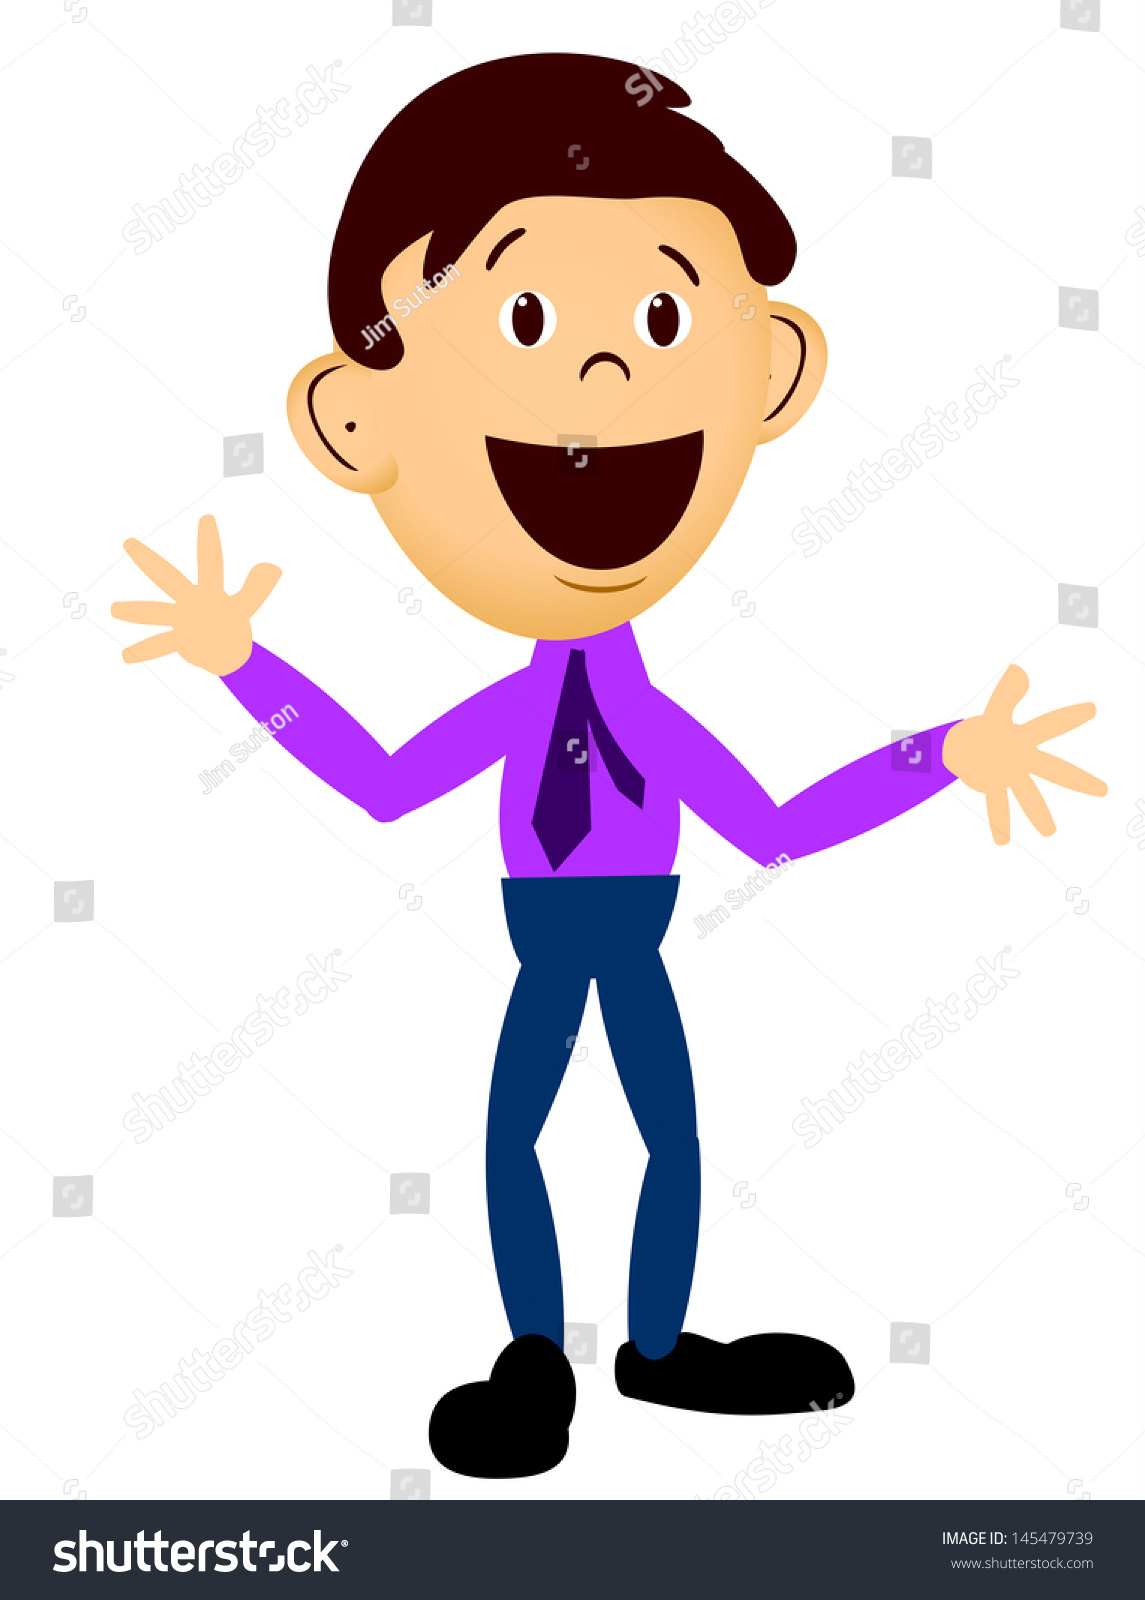 Business Man In Purple Shirt And Tie Expressing Happy